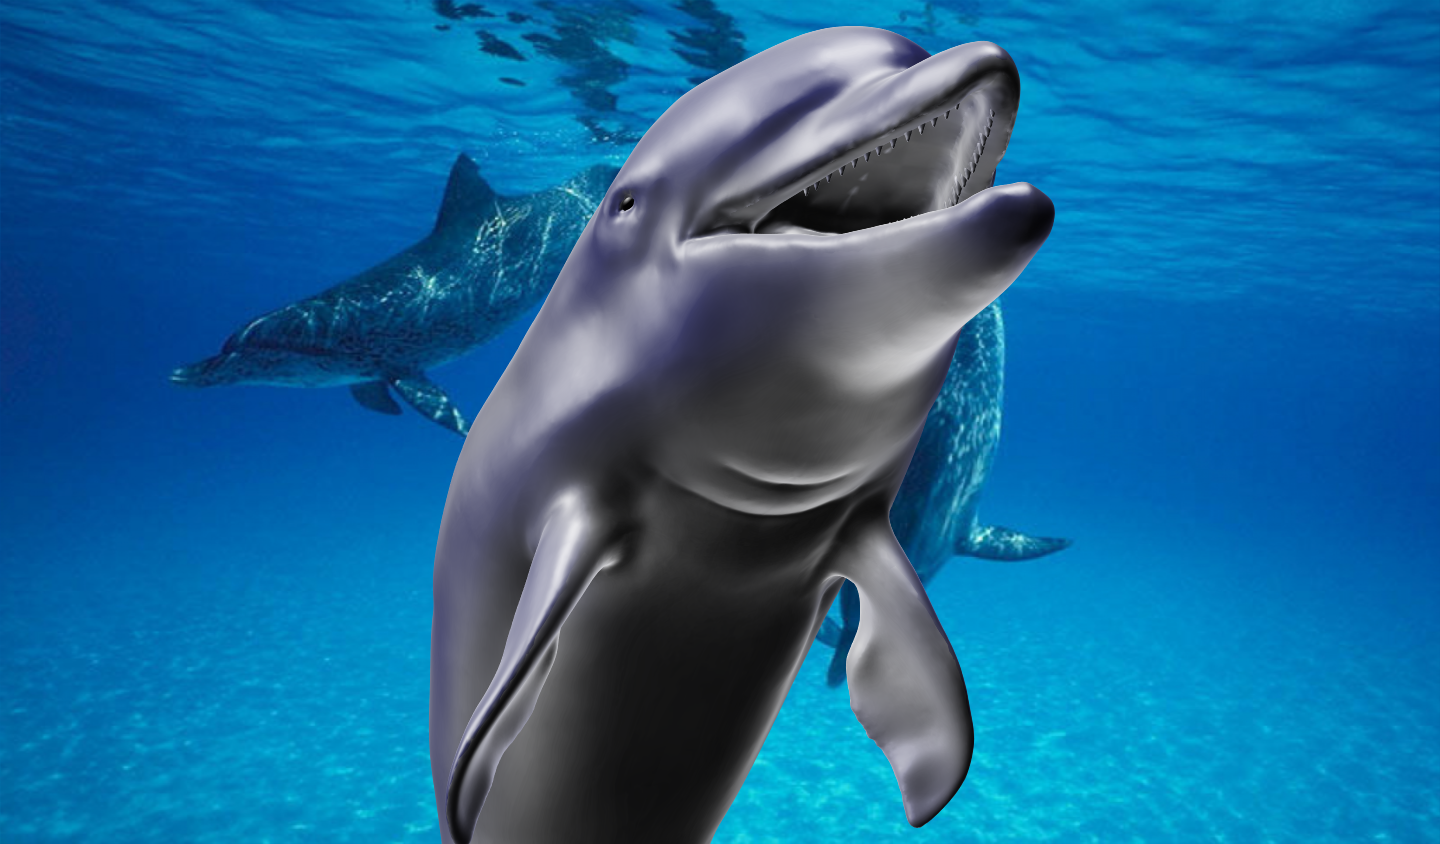 Sculptris: Dolphin Wallpaper